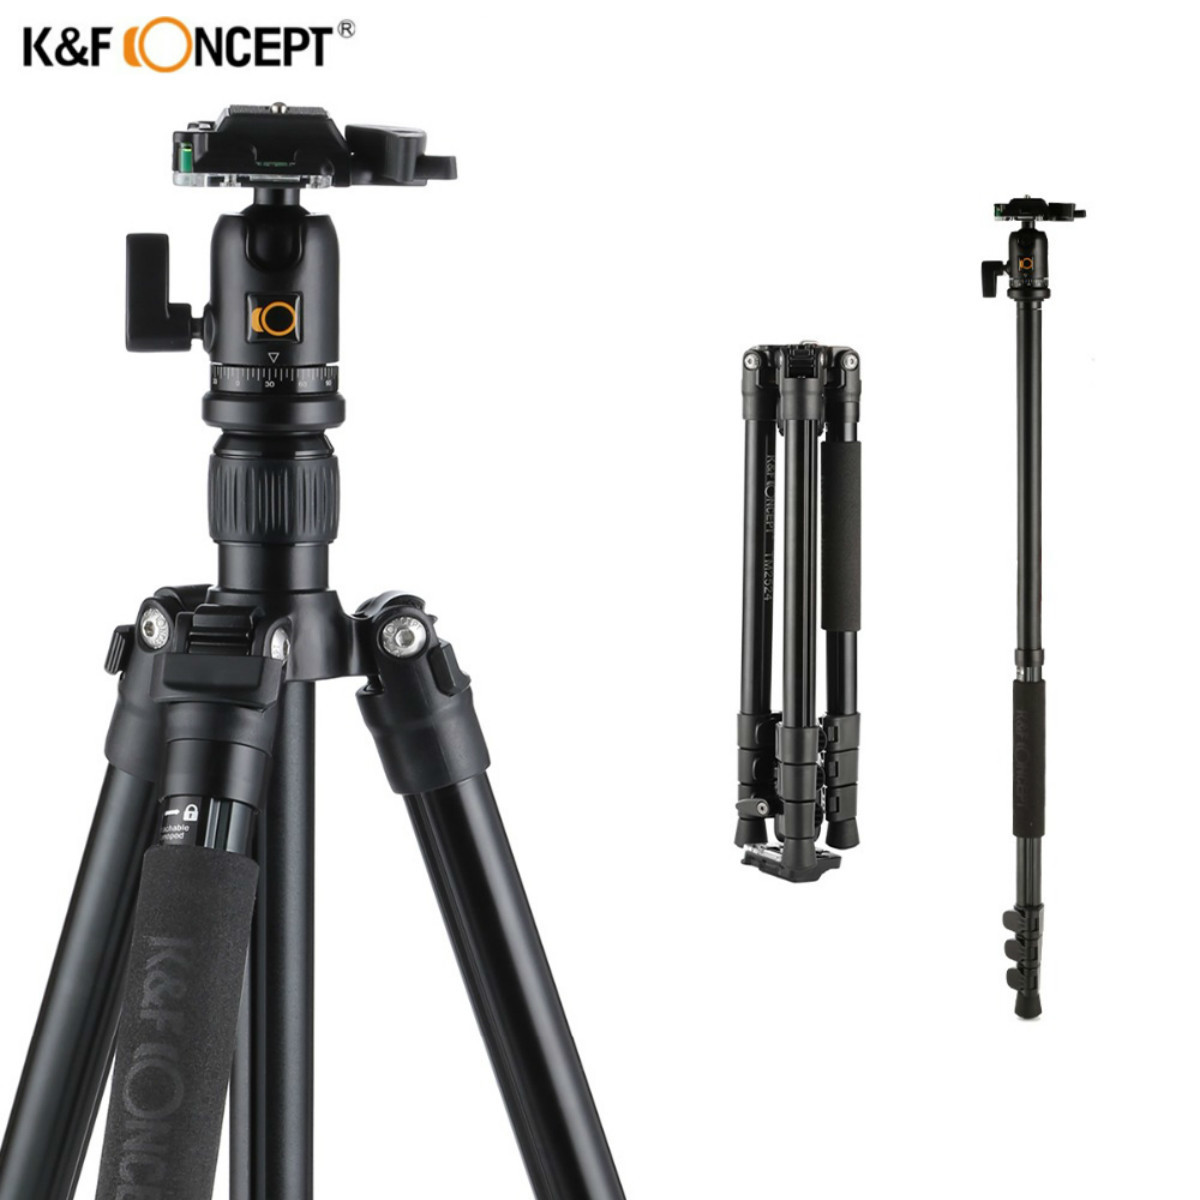 K&F CONCEPT Newest TM2524 Professional Aluminum Travel Photo Video Tripod Portable Monopod Stand For DSLR Camera With Ball Head ashanks a666 aluminum camera tripod with professional video ball head portable for photographic dslr camera 8kg 142cm 55 9